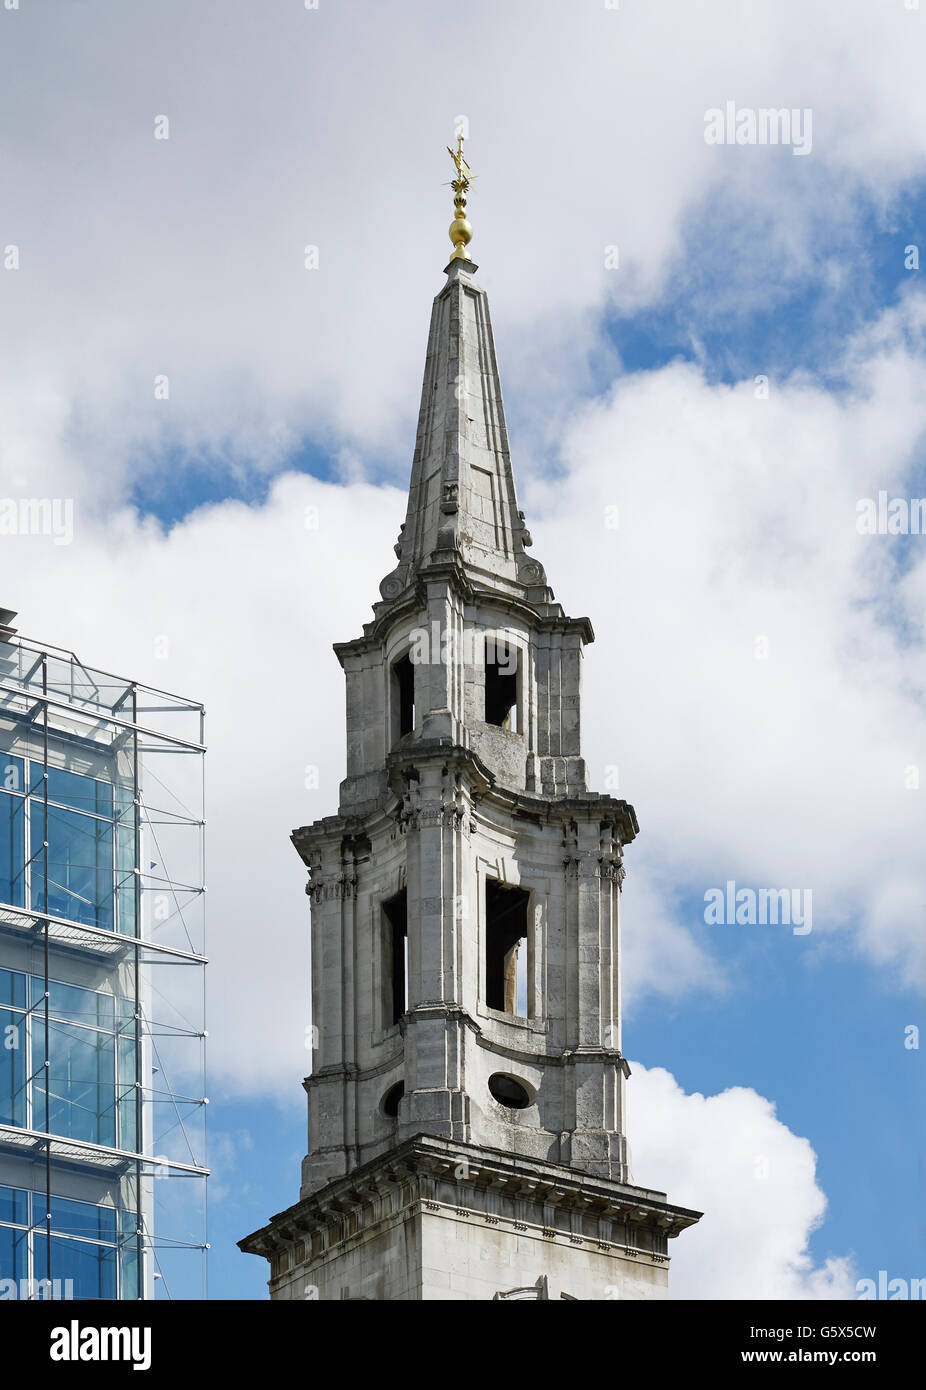 St Vedast Alias Foster, church in the City of London; Baroque spire, going from concave to convex and back to concave - Stock Image